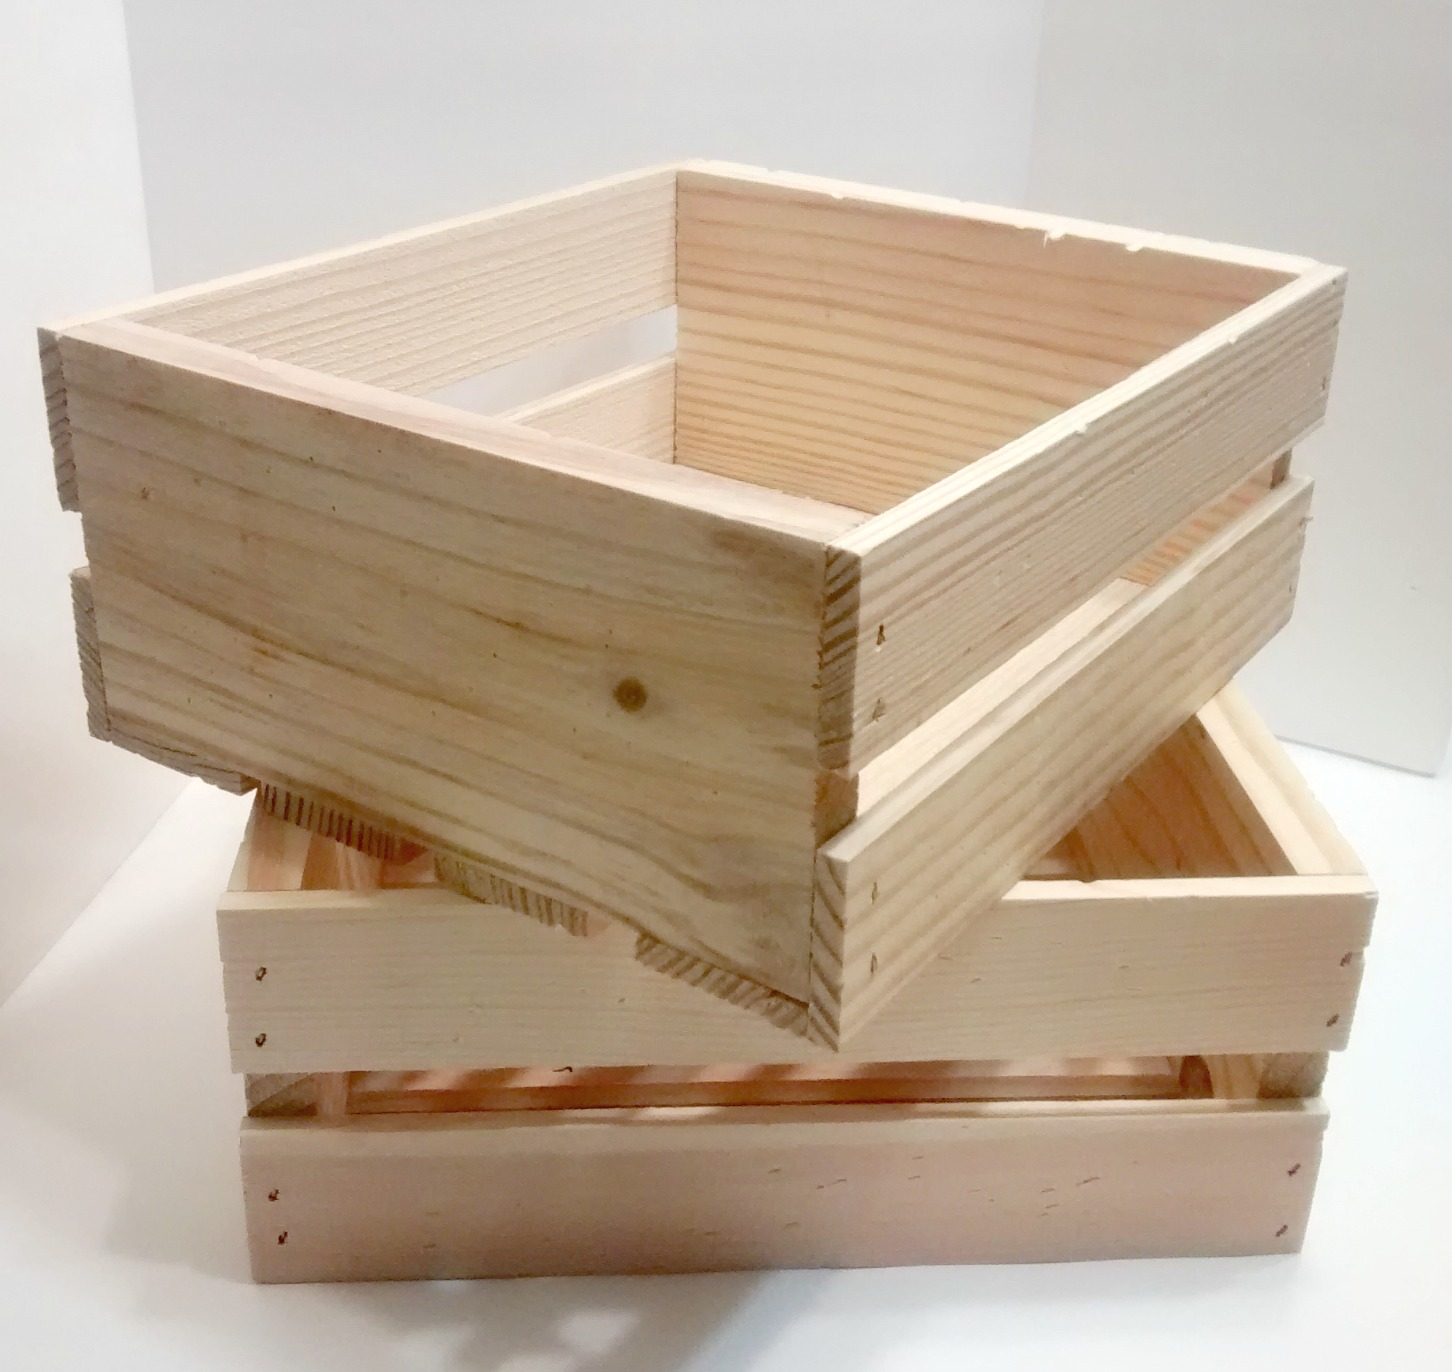 Diy vintage wooden crate welcome to the zoo for Timber crates